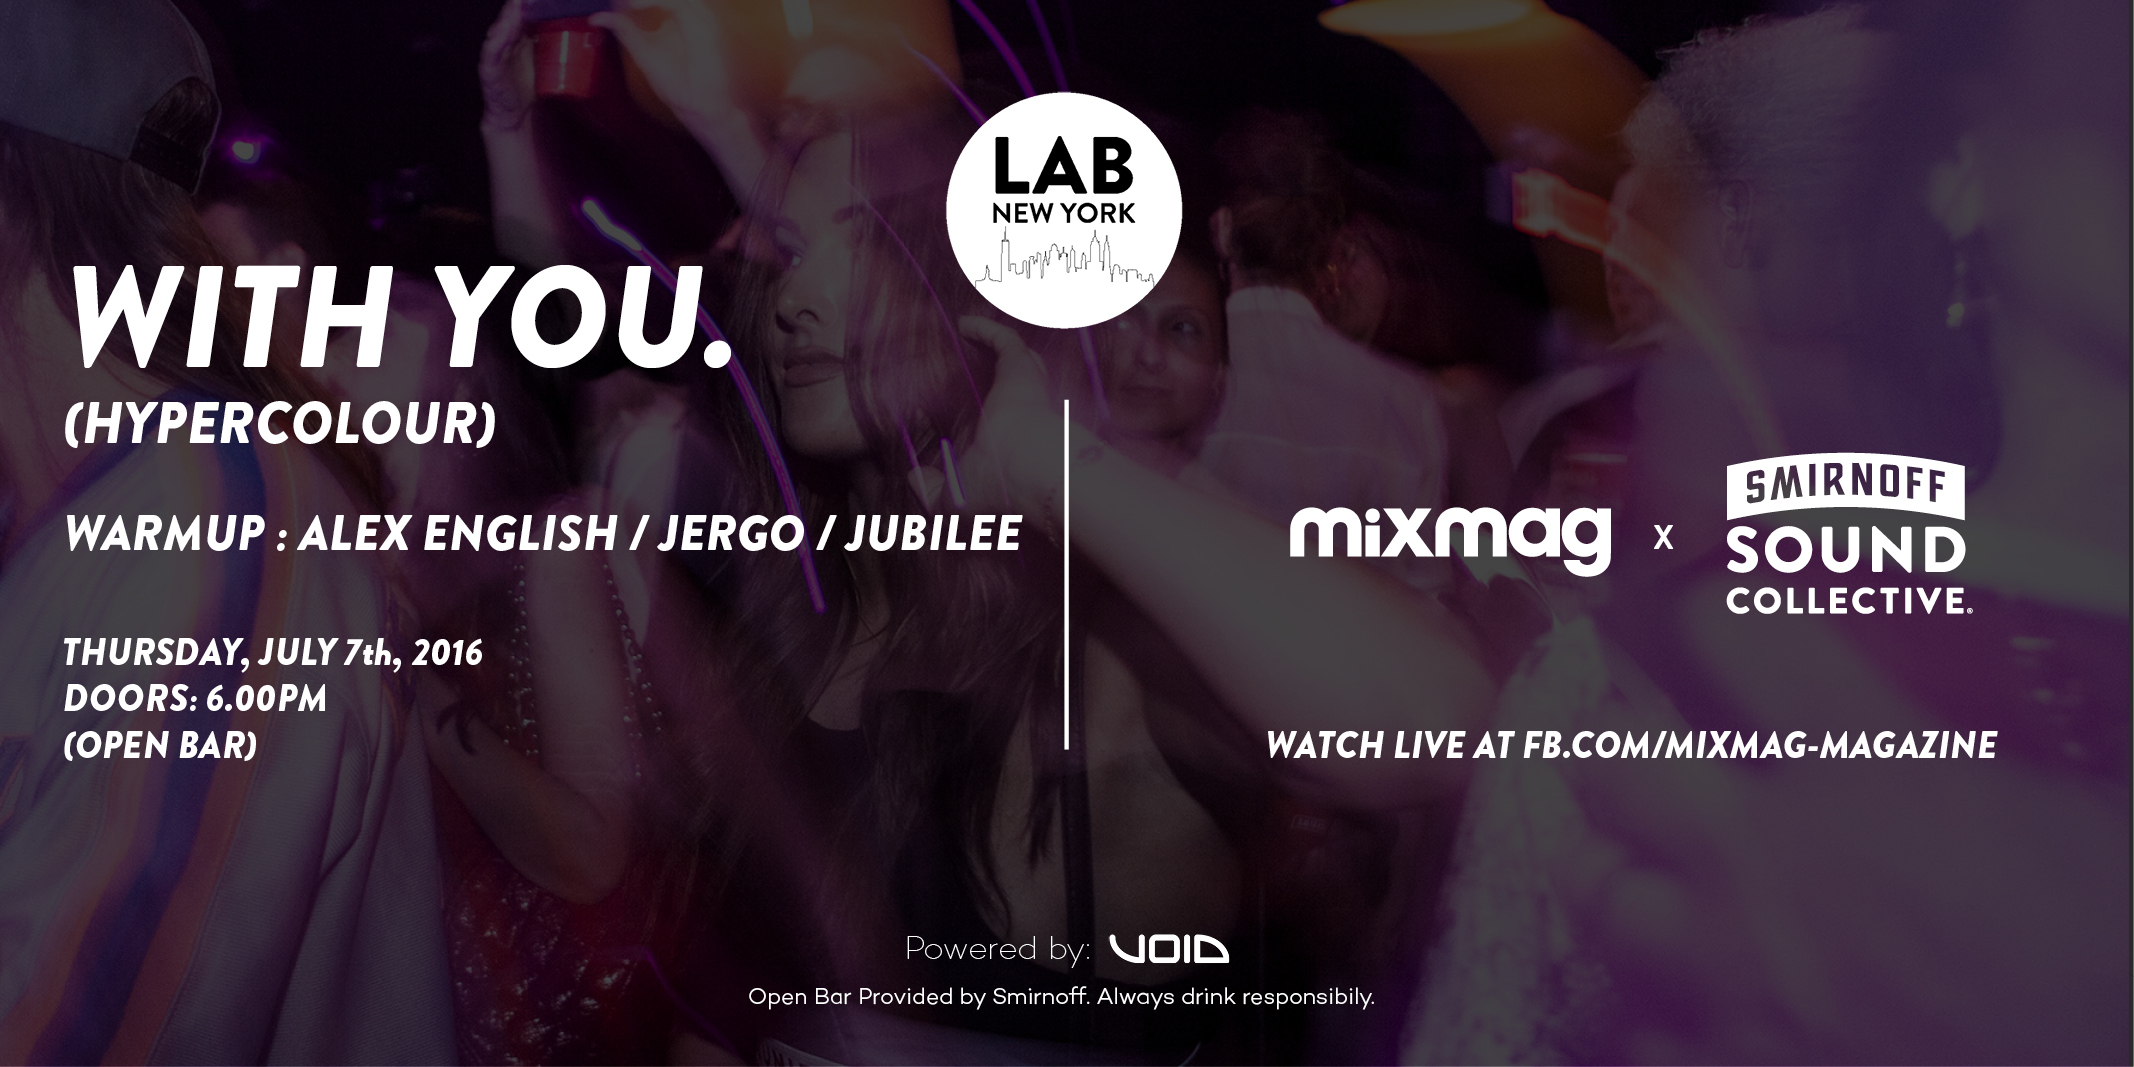 07-07-16 Lab NYC 7.7.16 - With You.jpg